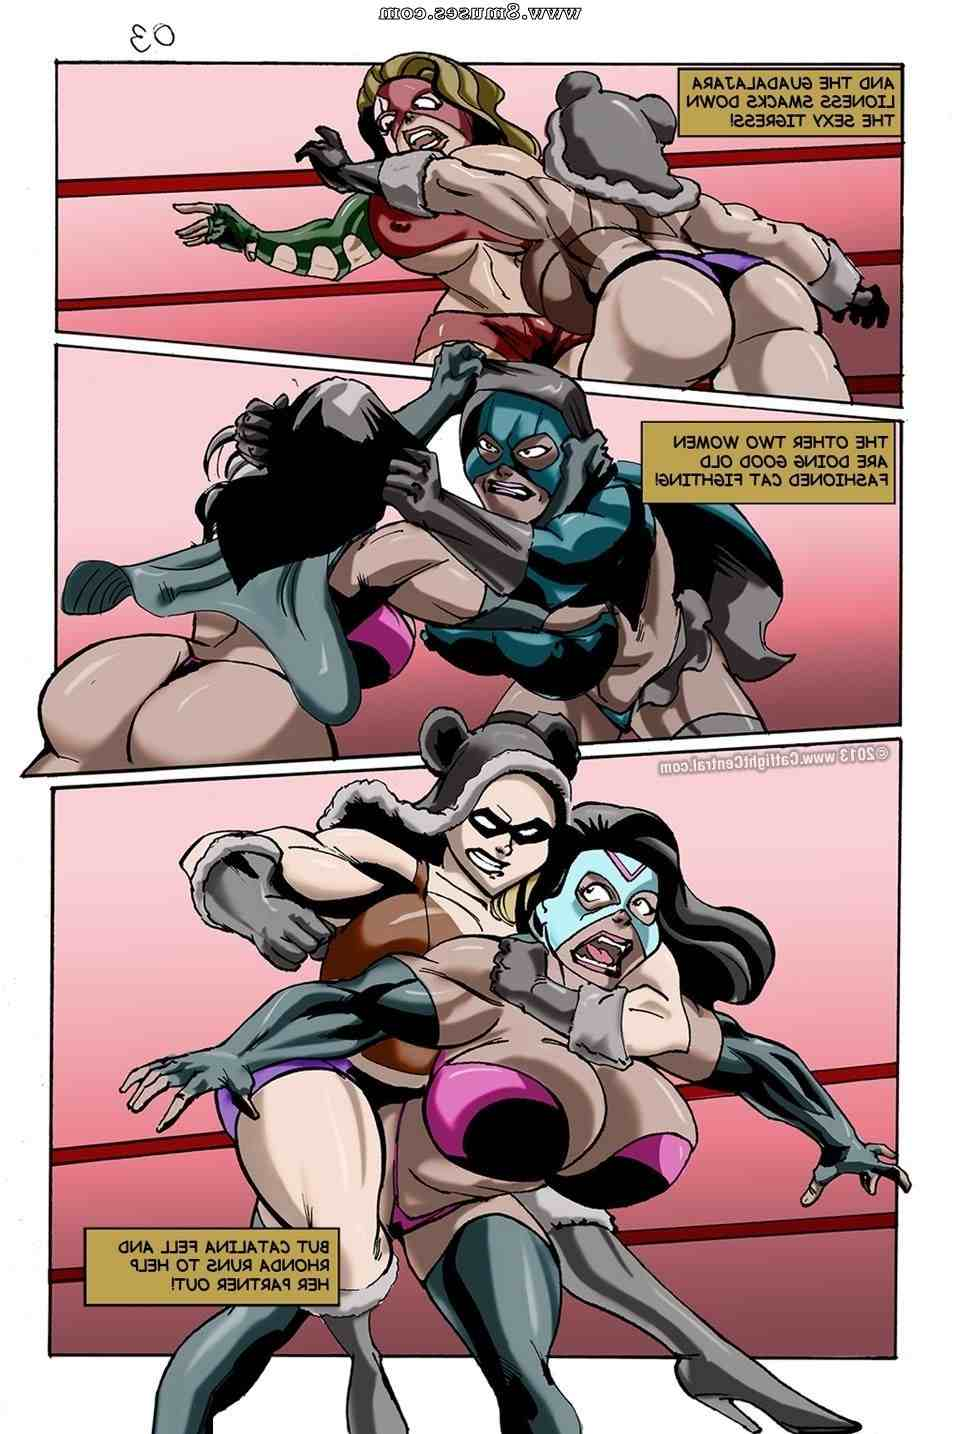 Central-Comics/Catfight-Central/Lucha-Libre-XXX Lucha_Libre_XXX__8muses_-_Sex_and_Porn_Comics_28.jpg